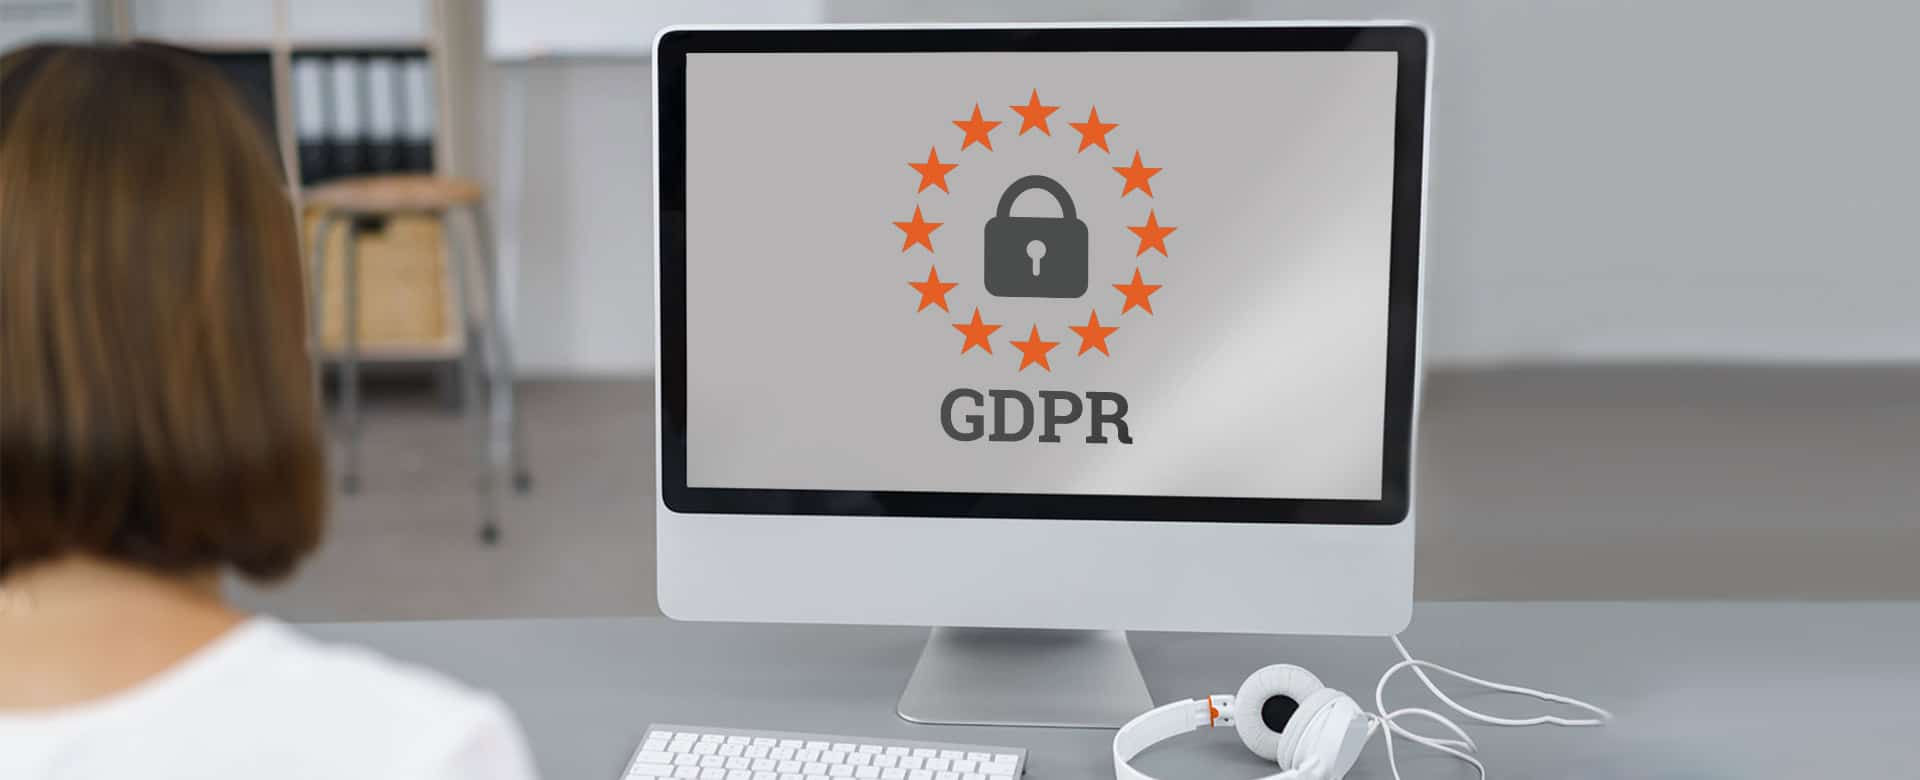 gdpr,compliance, avg, privacy wetgeving, europese wetgeving, general data protection regulation